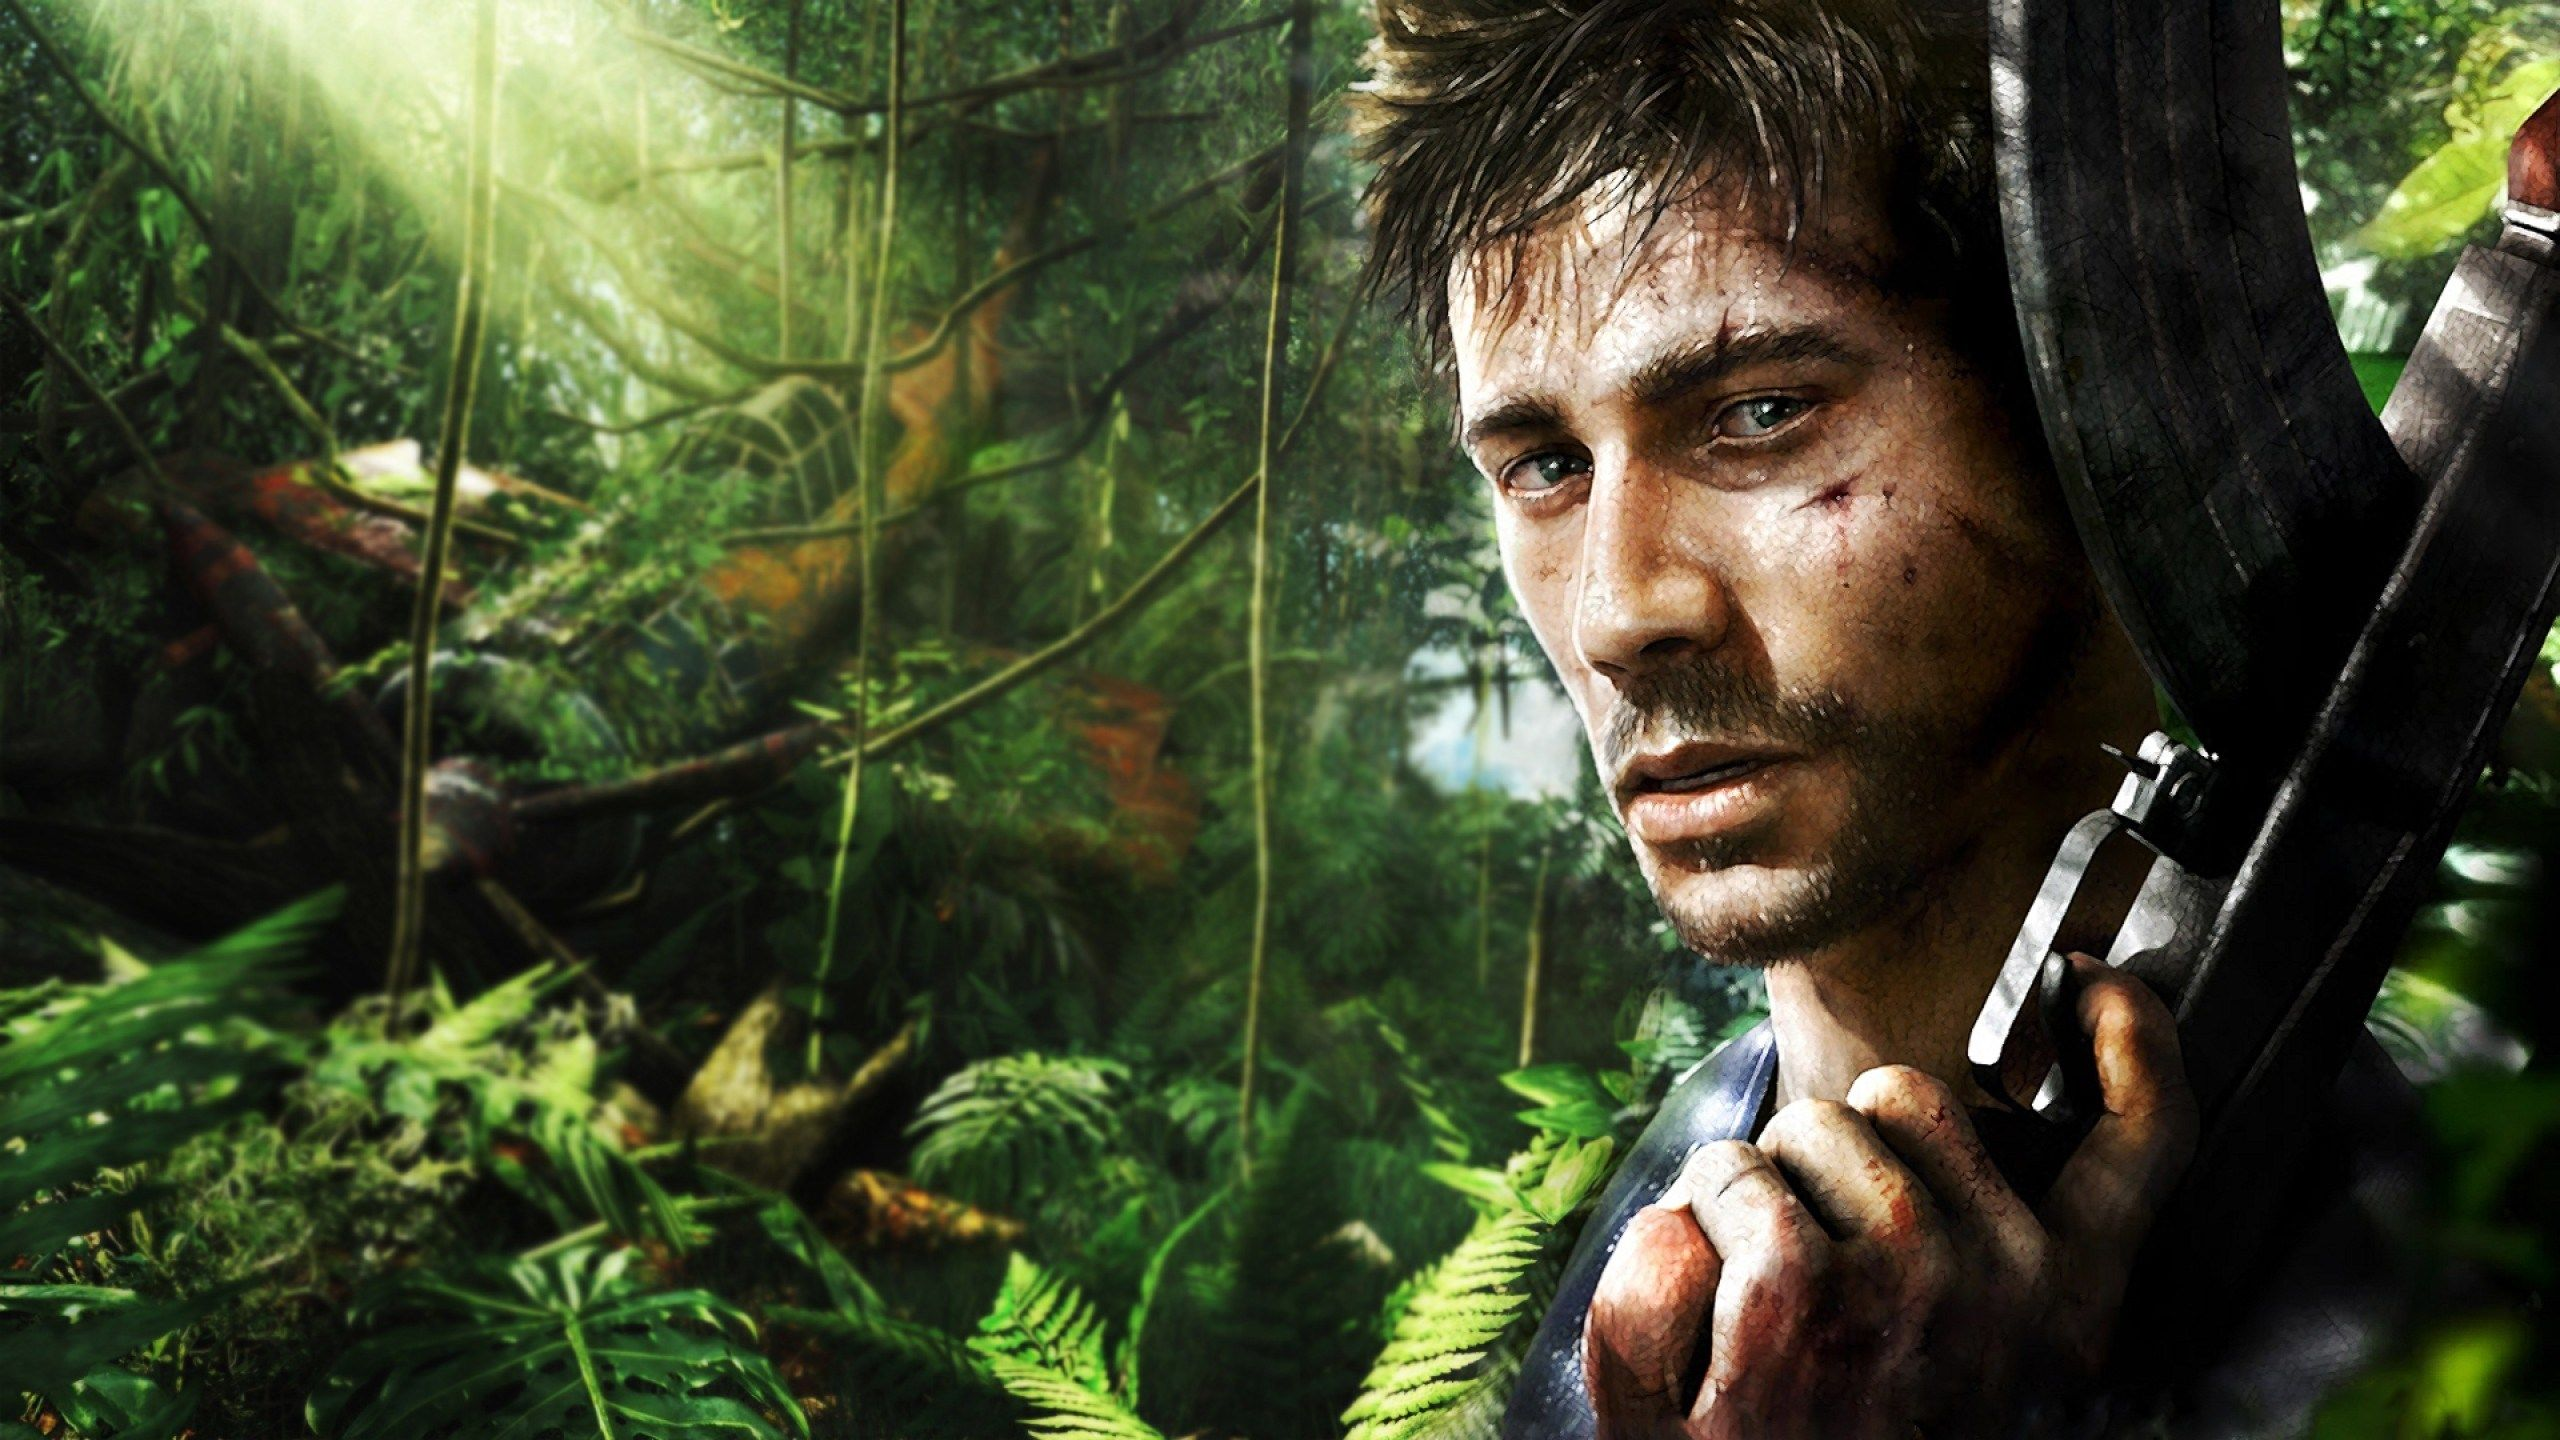 2017 03 05 Far Cry 3 Wallpaper Full Hd Backgrounds 1575045